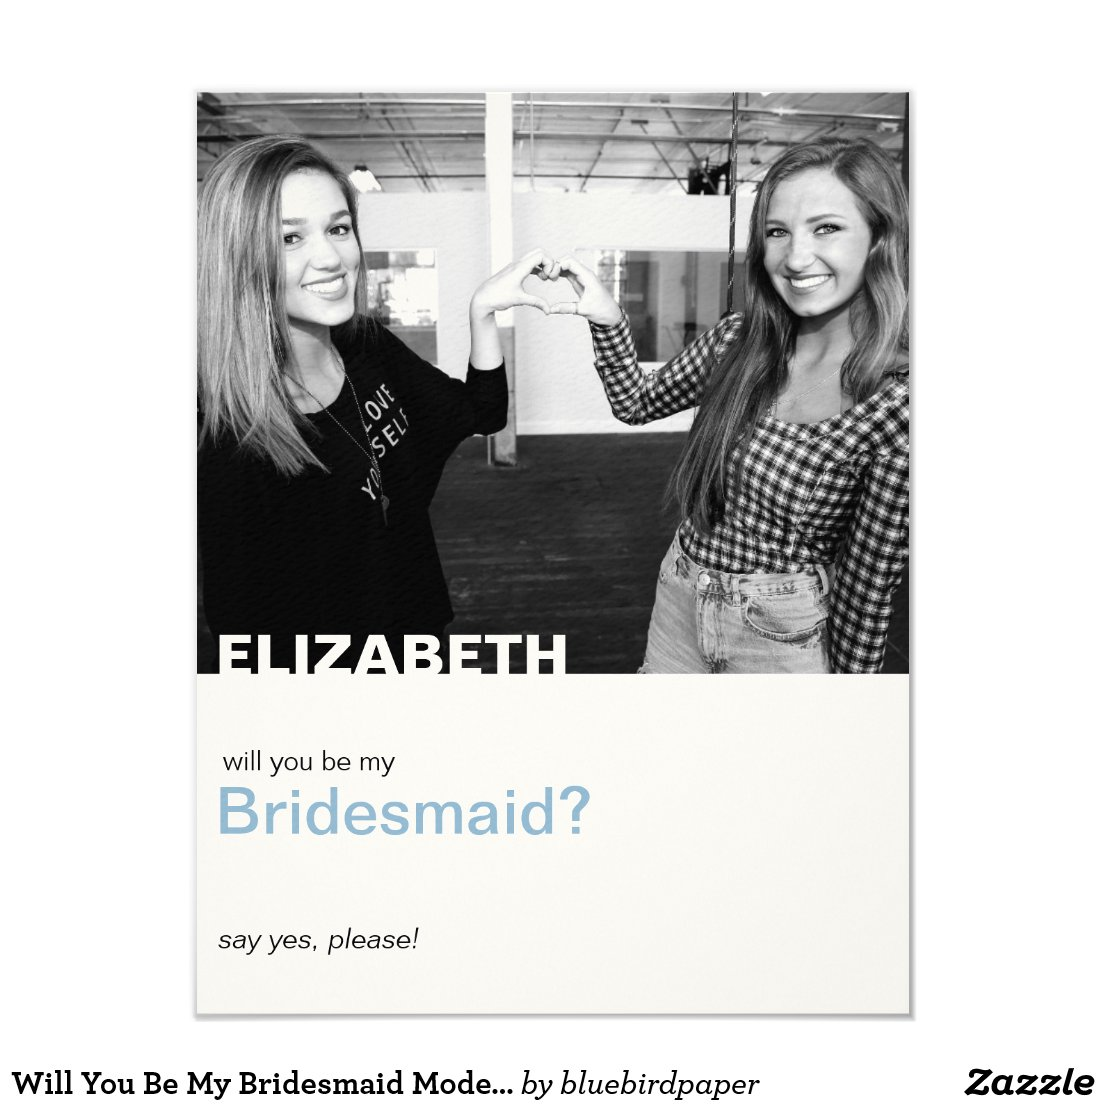 Will You Be My Bridesmaid Modern Photo Card